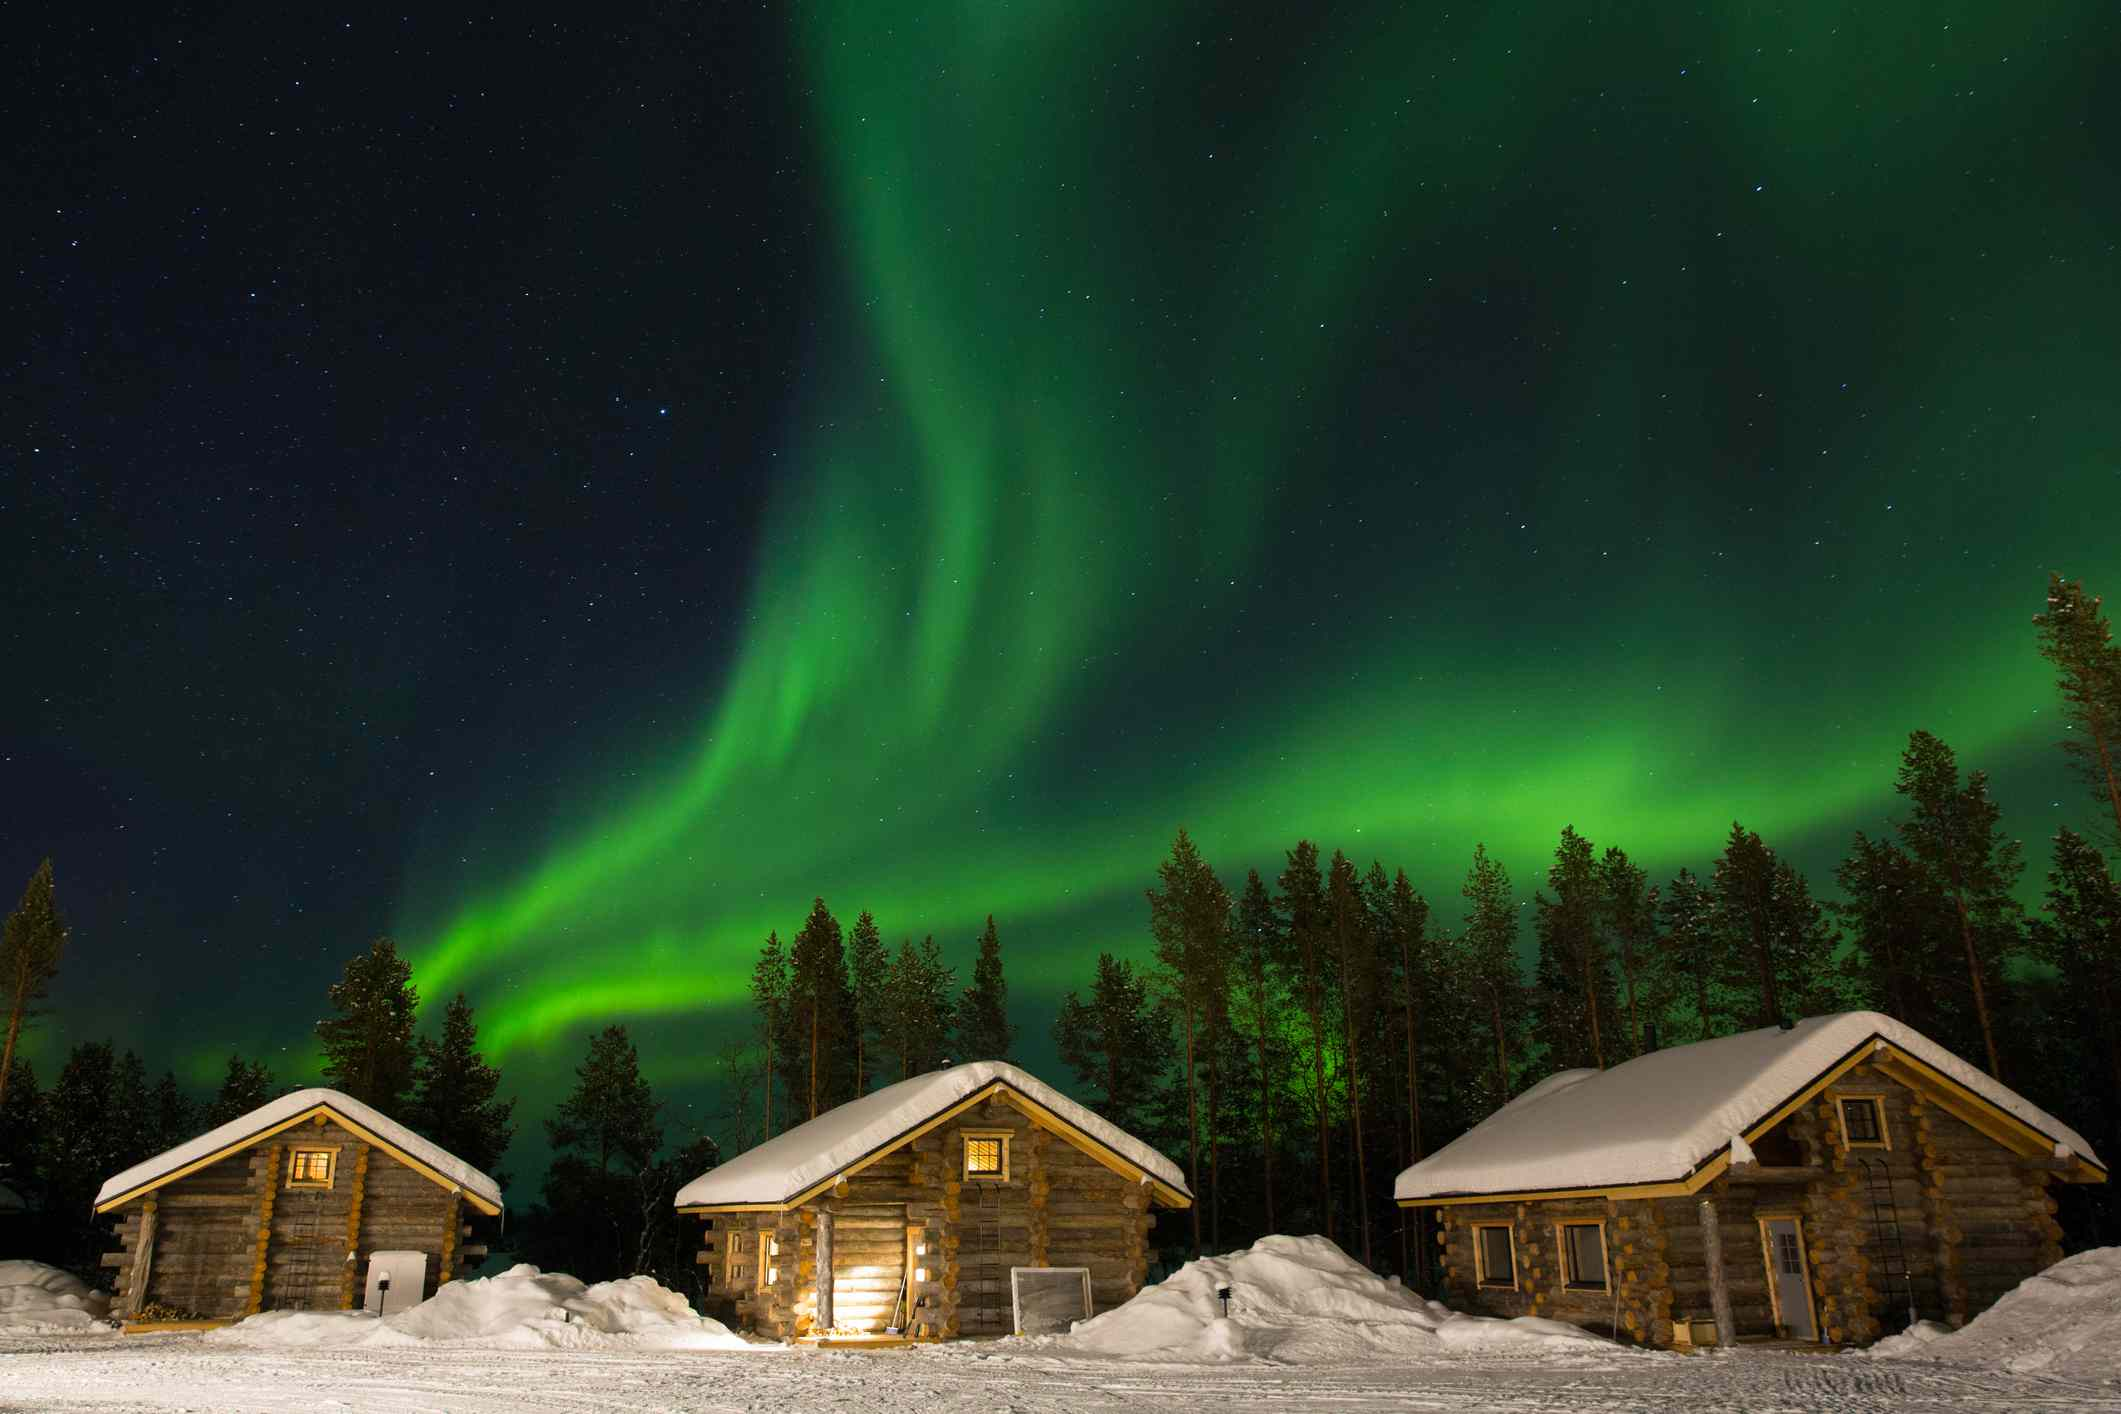 Green northern lights over snow-covered cabins in Laponia, Finland